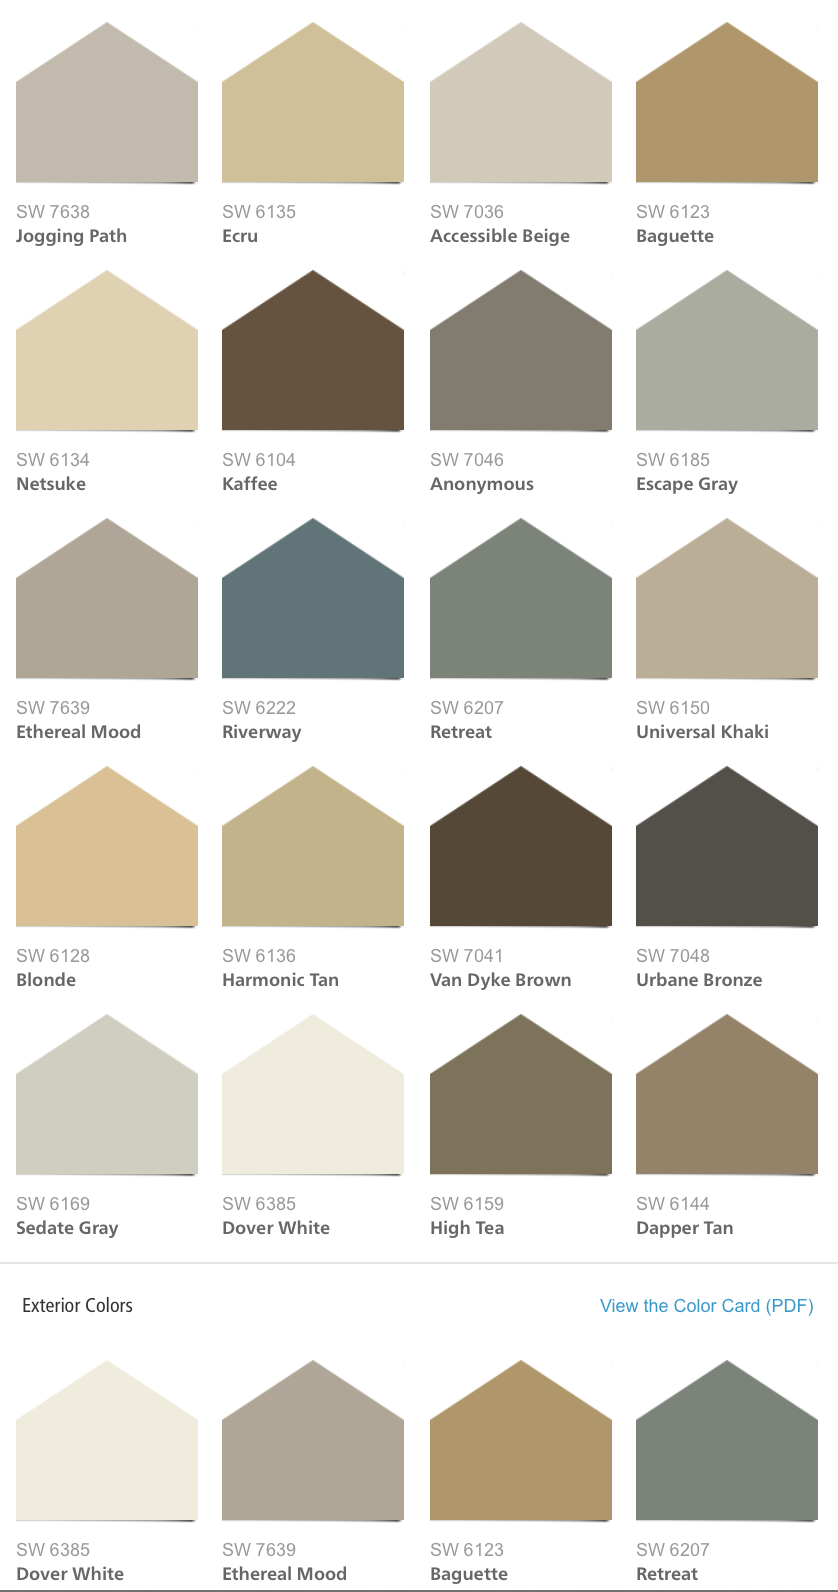 Sherwin Williams Hgtv Home Neutral Nuance Color Palette Paintin 39 The Town Pinterest Hgtv